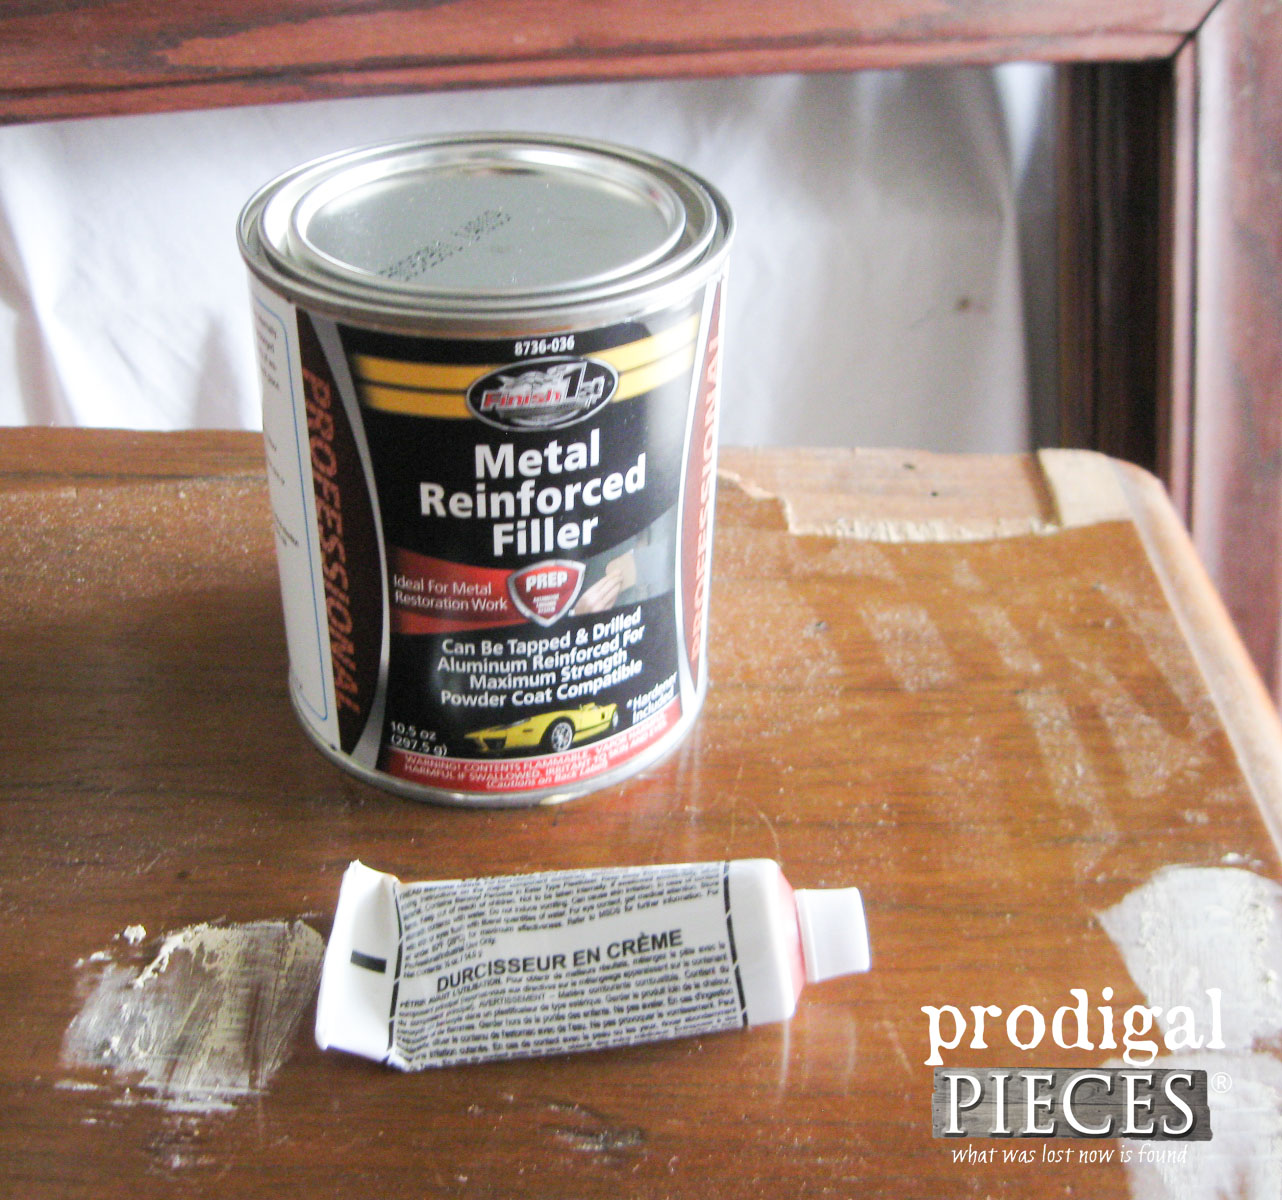 Autobody Filler to Repair Badly Damaged Furniture | Prodigal Pieces | www.prodigalpieces.com